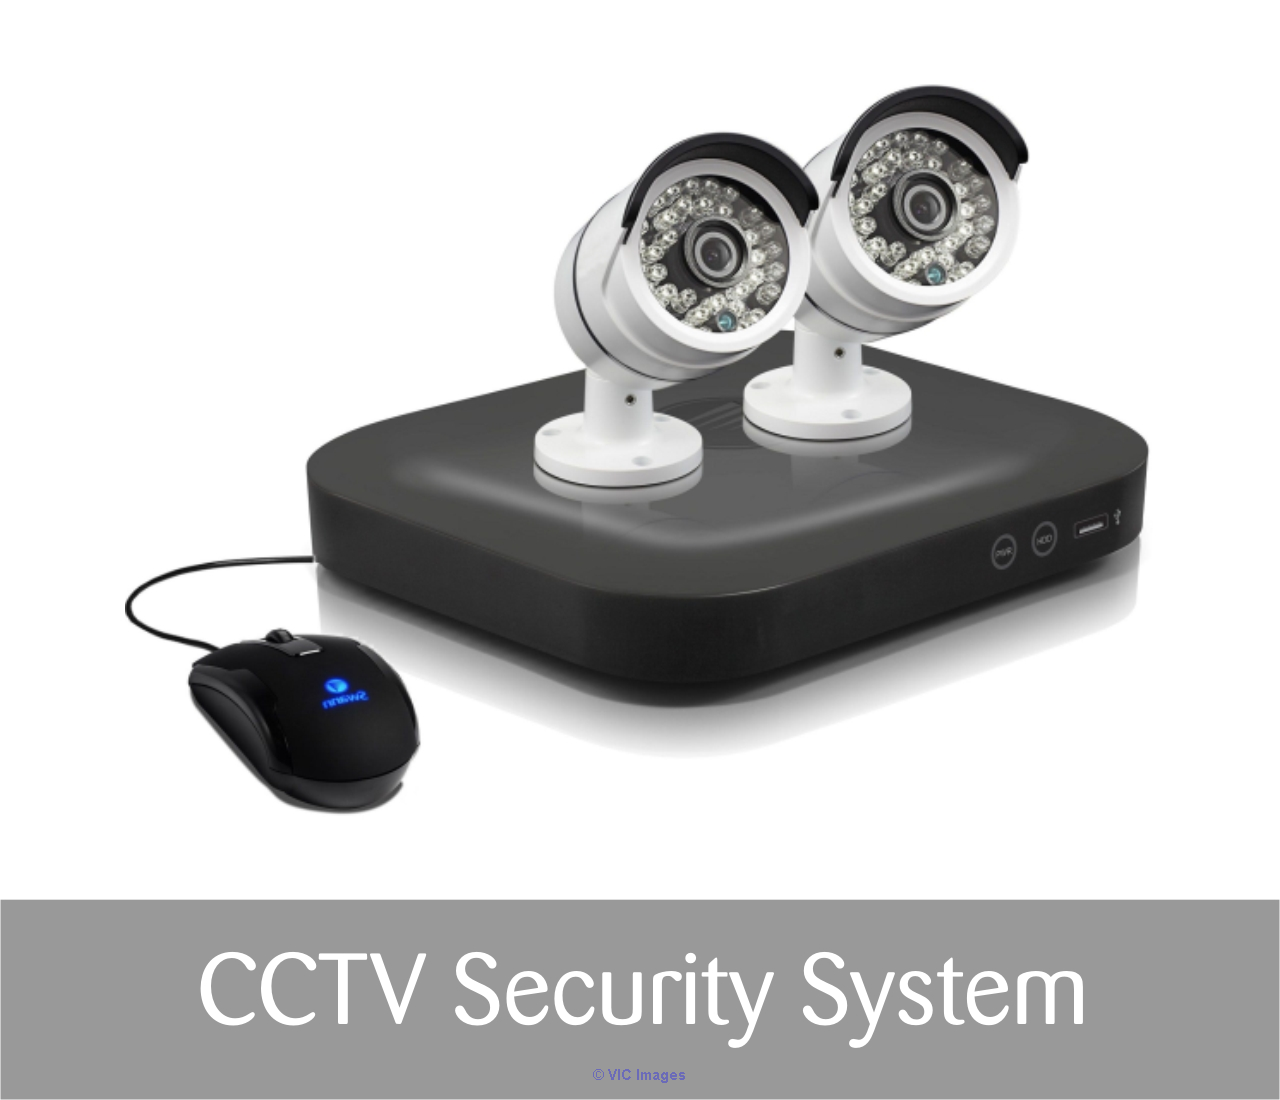 CCTVKart.com -CCTV Security System, Fire Alarms Systems, Rajasthan ottawa